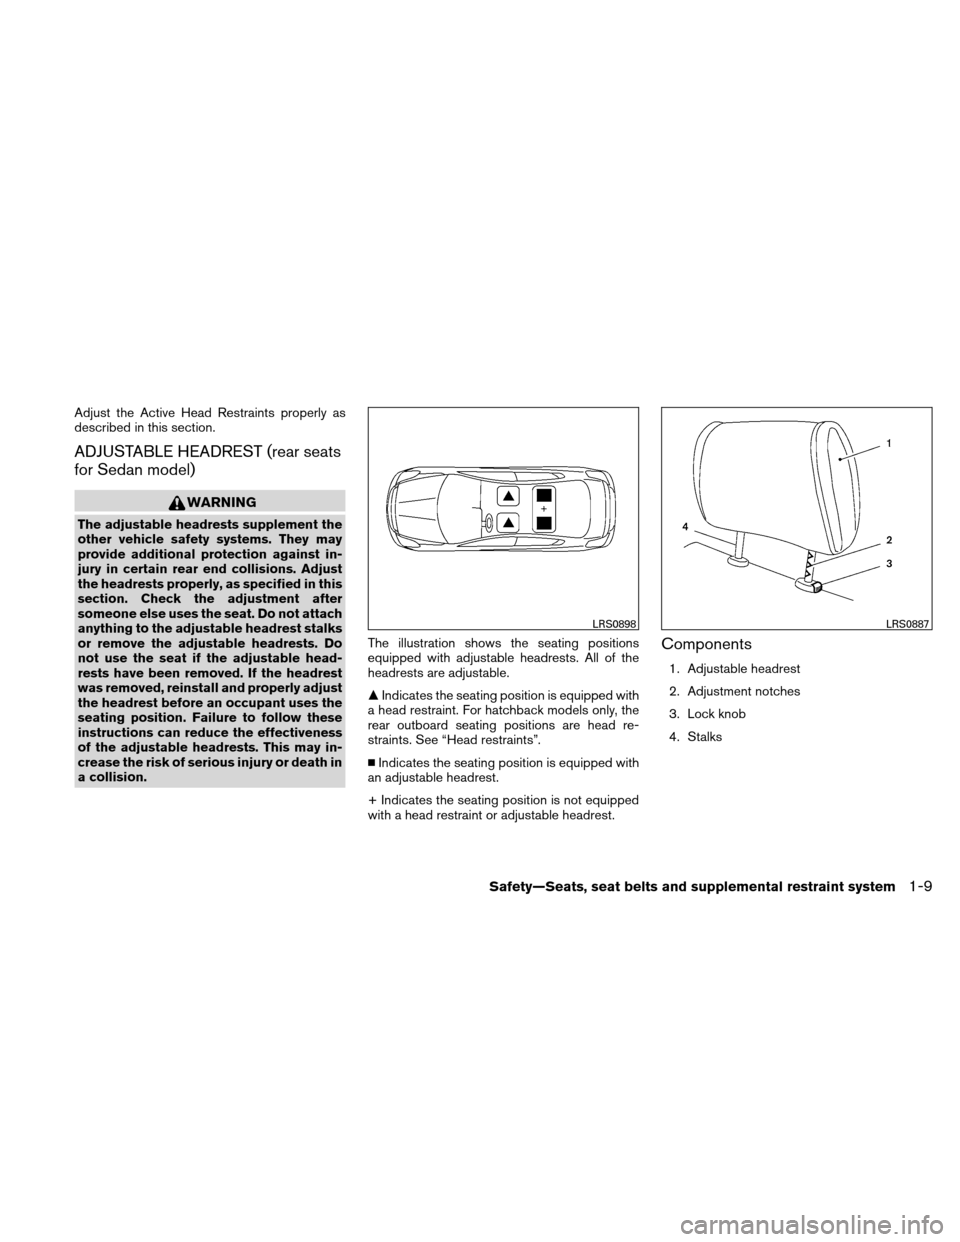 NISSAN VERSA HATCHBACK 2011 1.G Owners Manual Adjust the Active Head Restraints properly as described in this section. ADJUSTABLE HEADREST (rear seats for Sedan model) WARNING The adjustable headrests supplement the other vehicle safety systems.